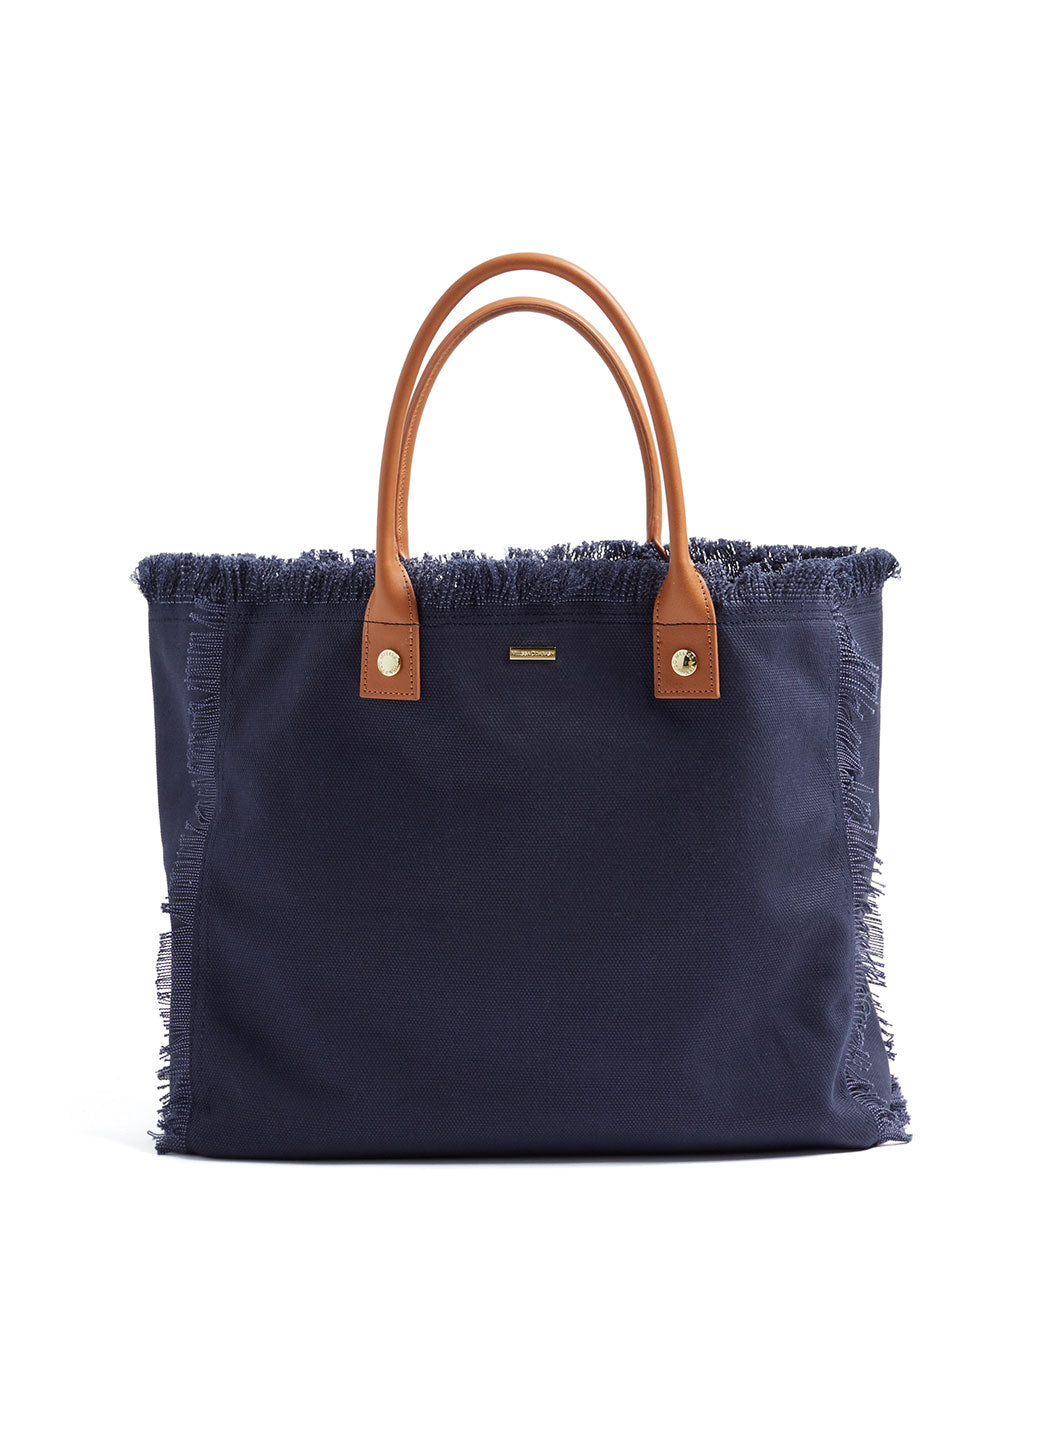 Cap Ferrat Large Beach Tote Navy